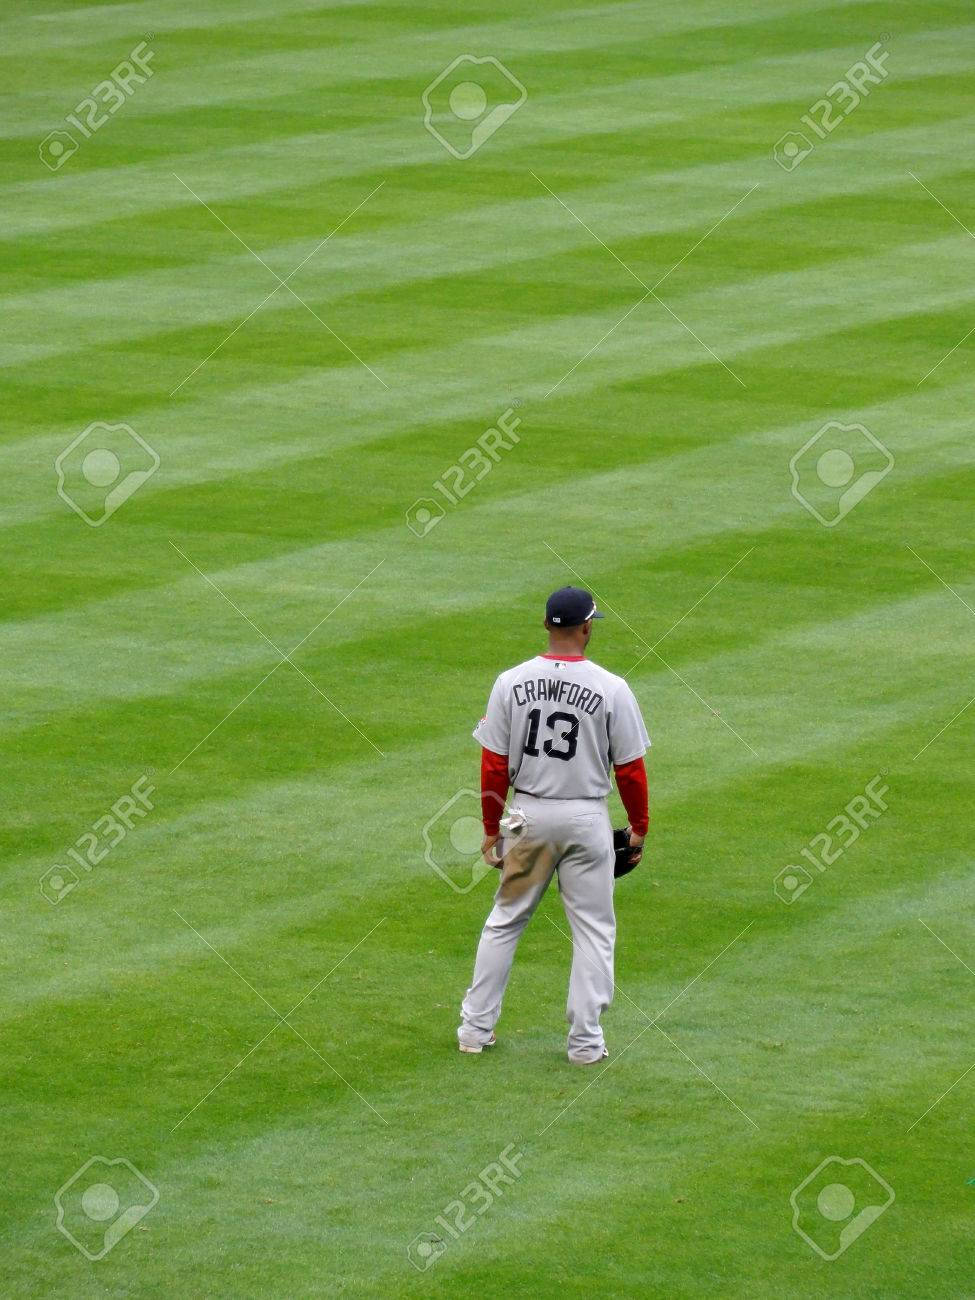 OAKLAND - APRIL 20: Red Sox Outfielder number 13 Carl Crawford stand in outfield with sunglasses on top of hat and dirt stain on pants in Oakland, California on April 20 2011. Stock Photo - 27929679